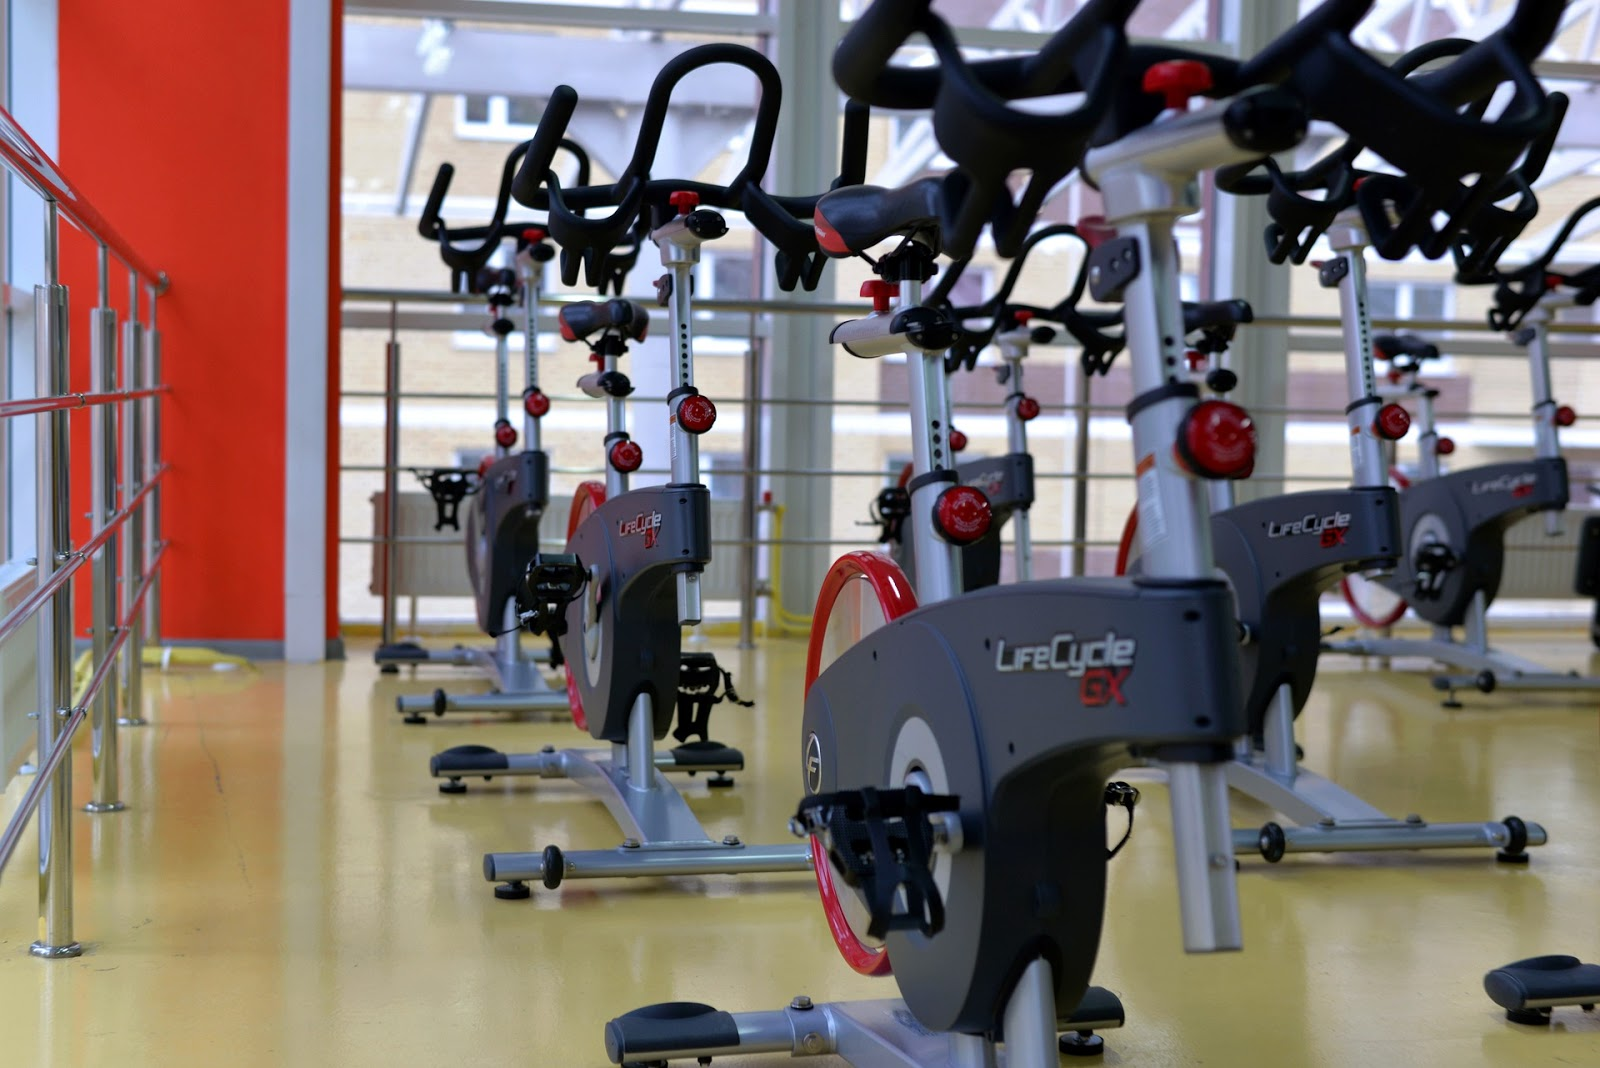 a room full of spin bikes ready for an adult cycling class